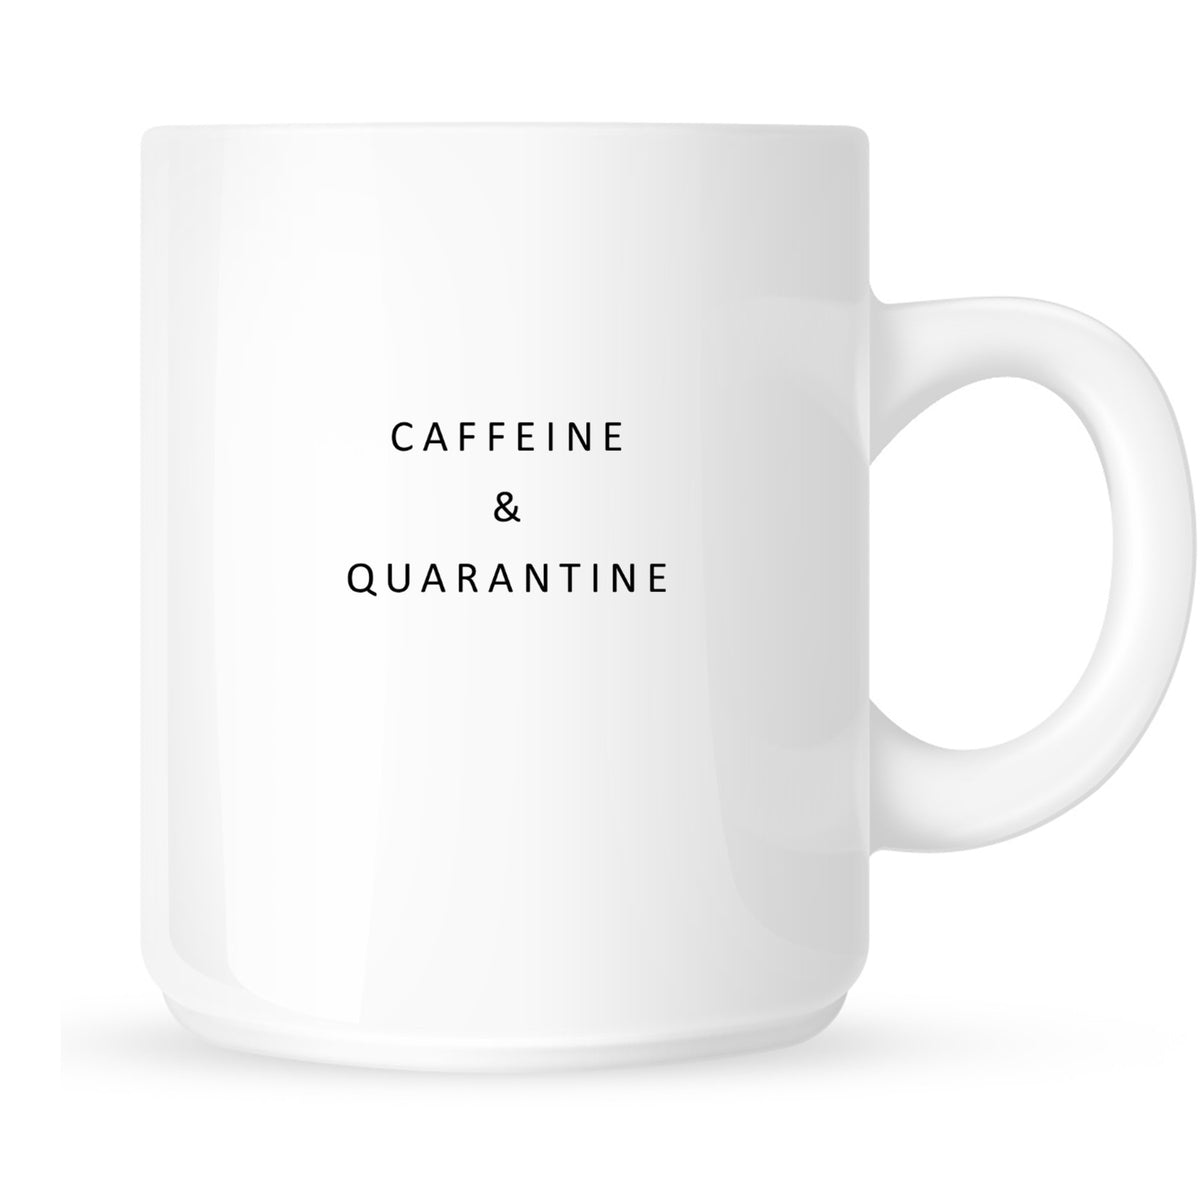 Mug - Caffeine and Quarantine